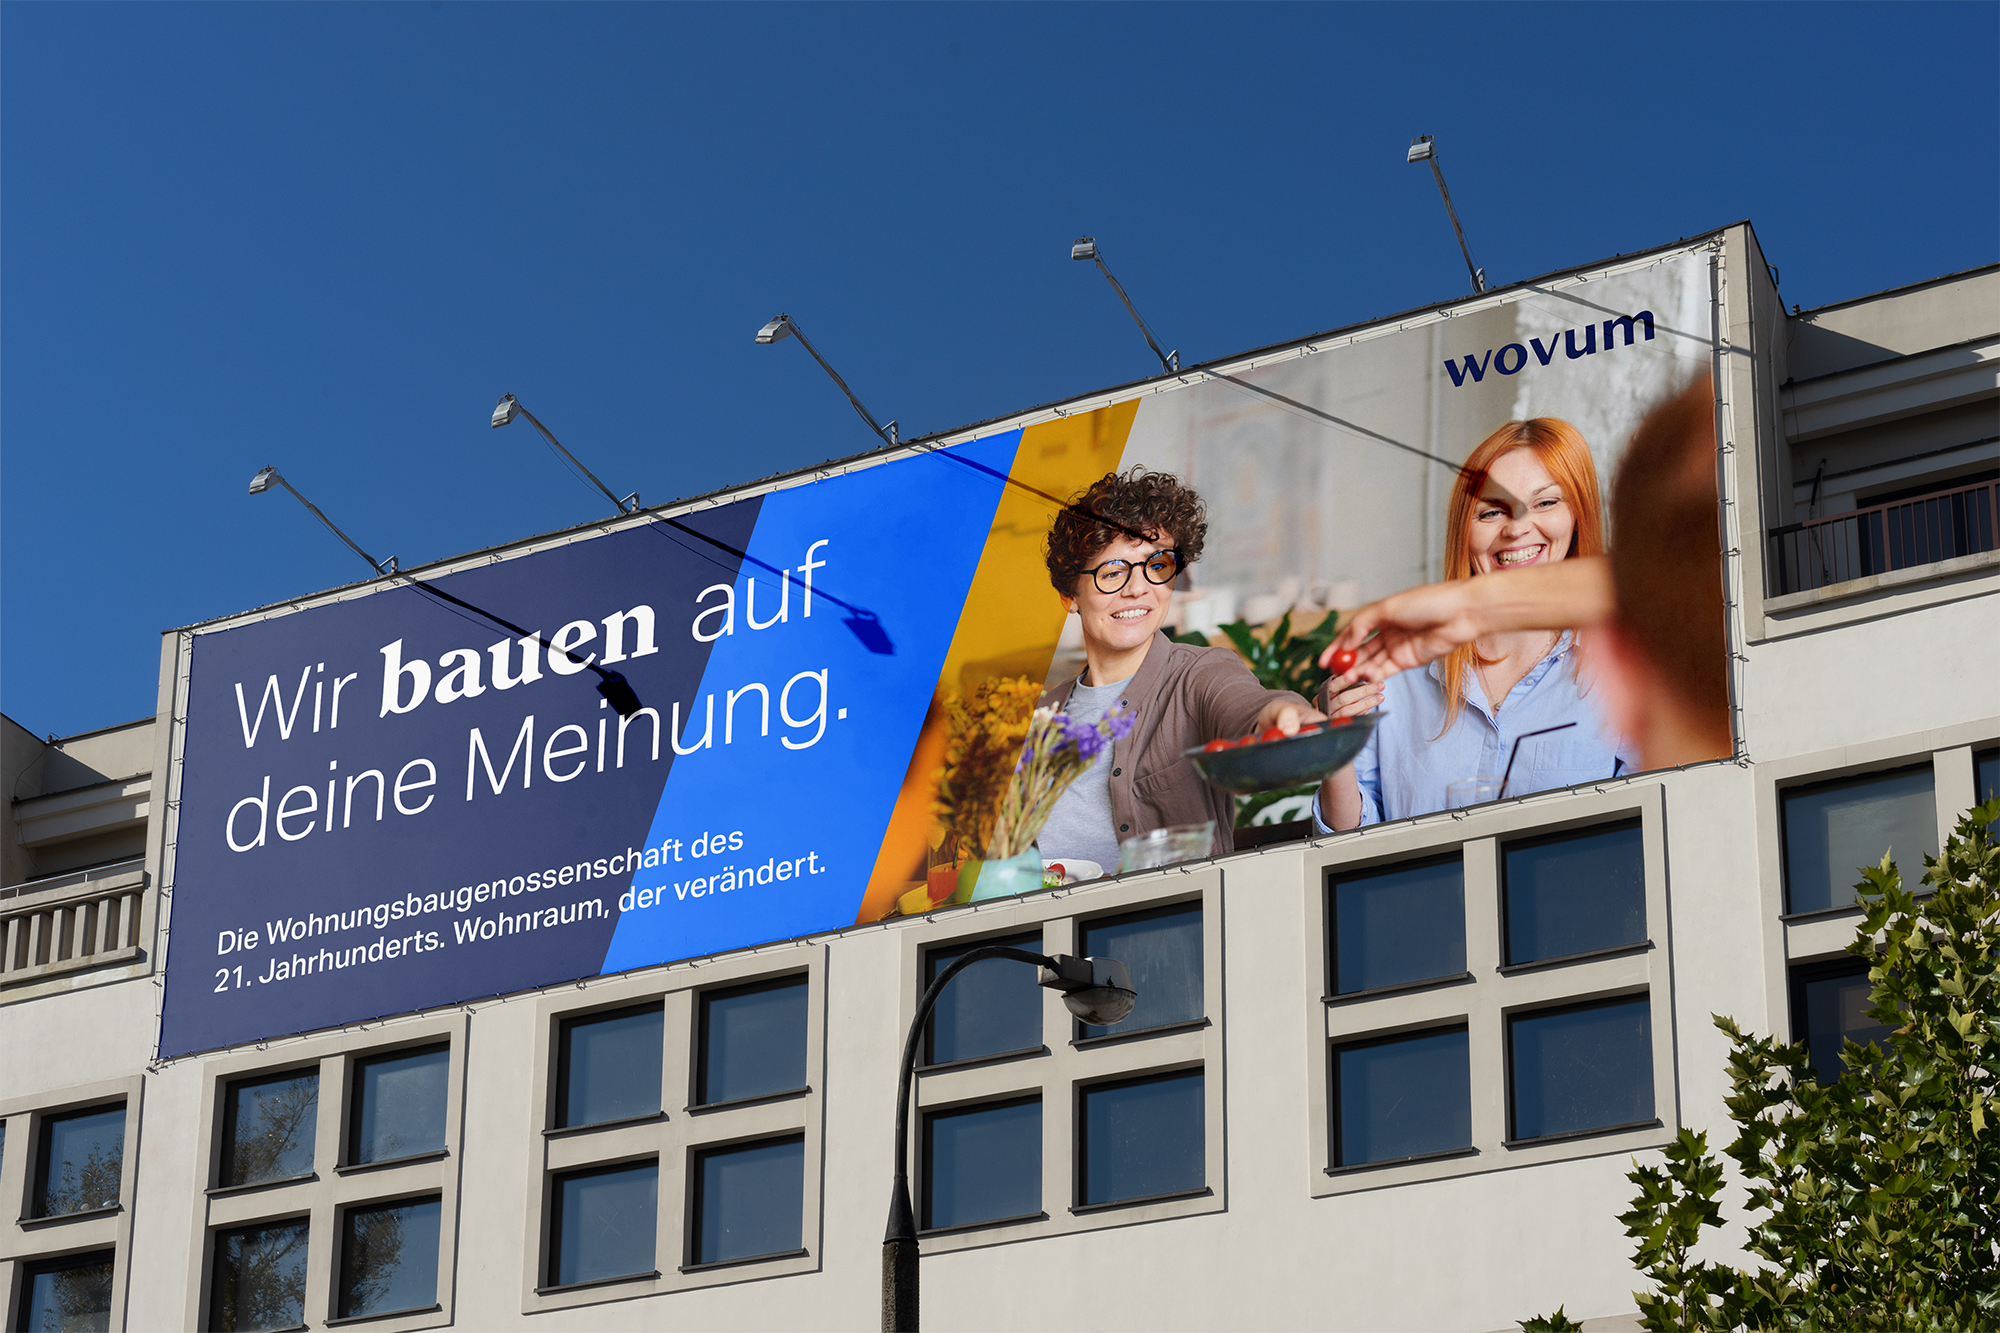 The image shows a photograph of a large wovum billboard in an urban setting.